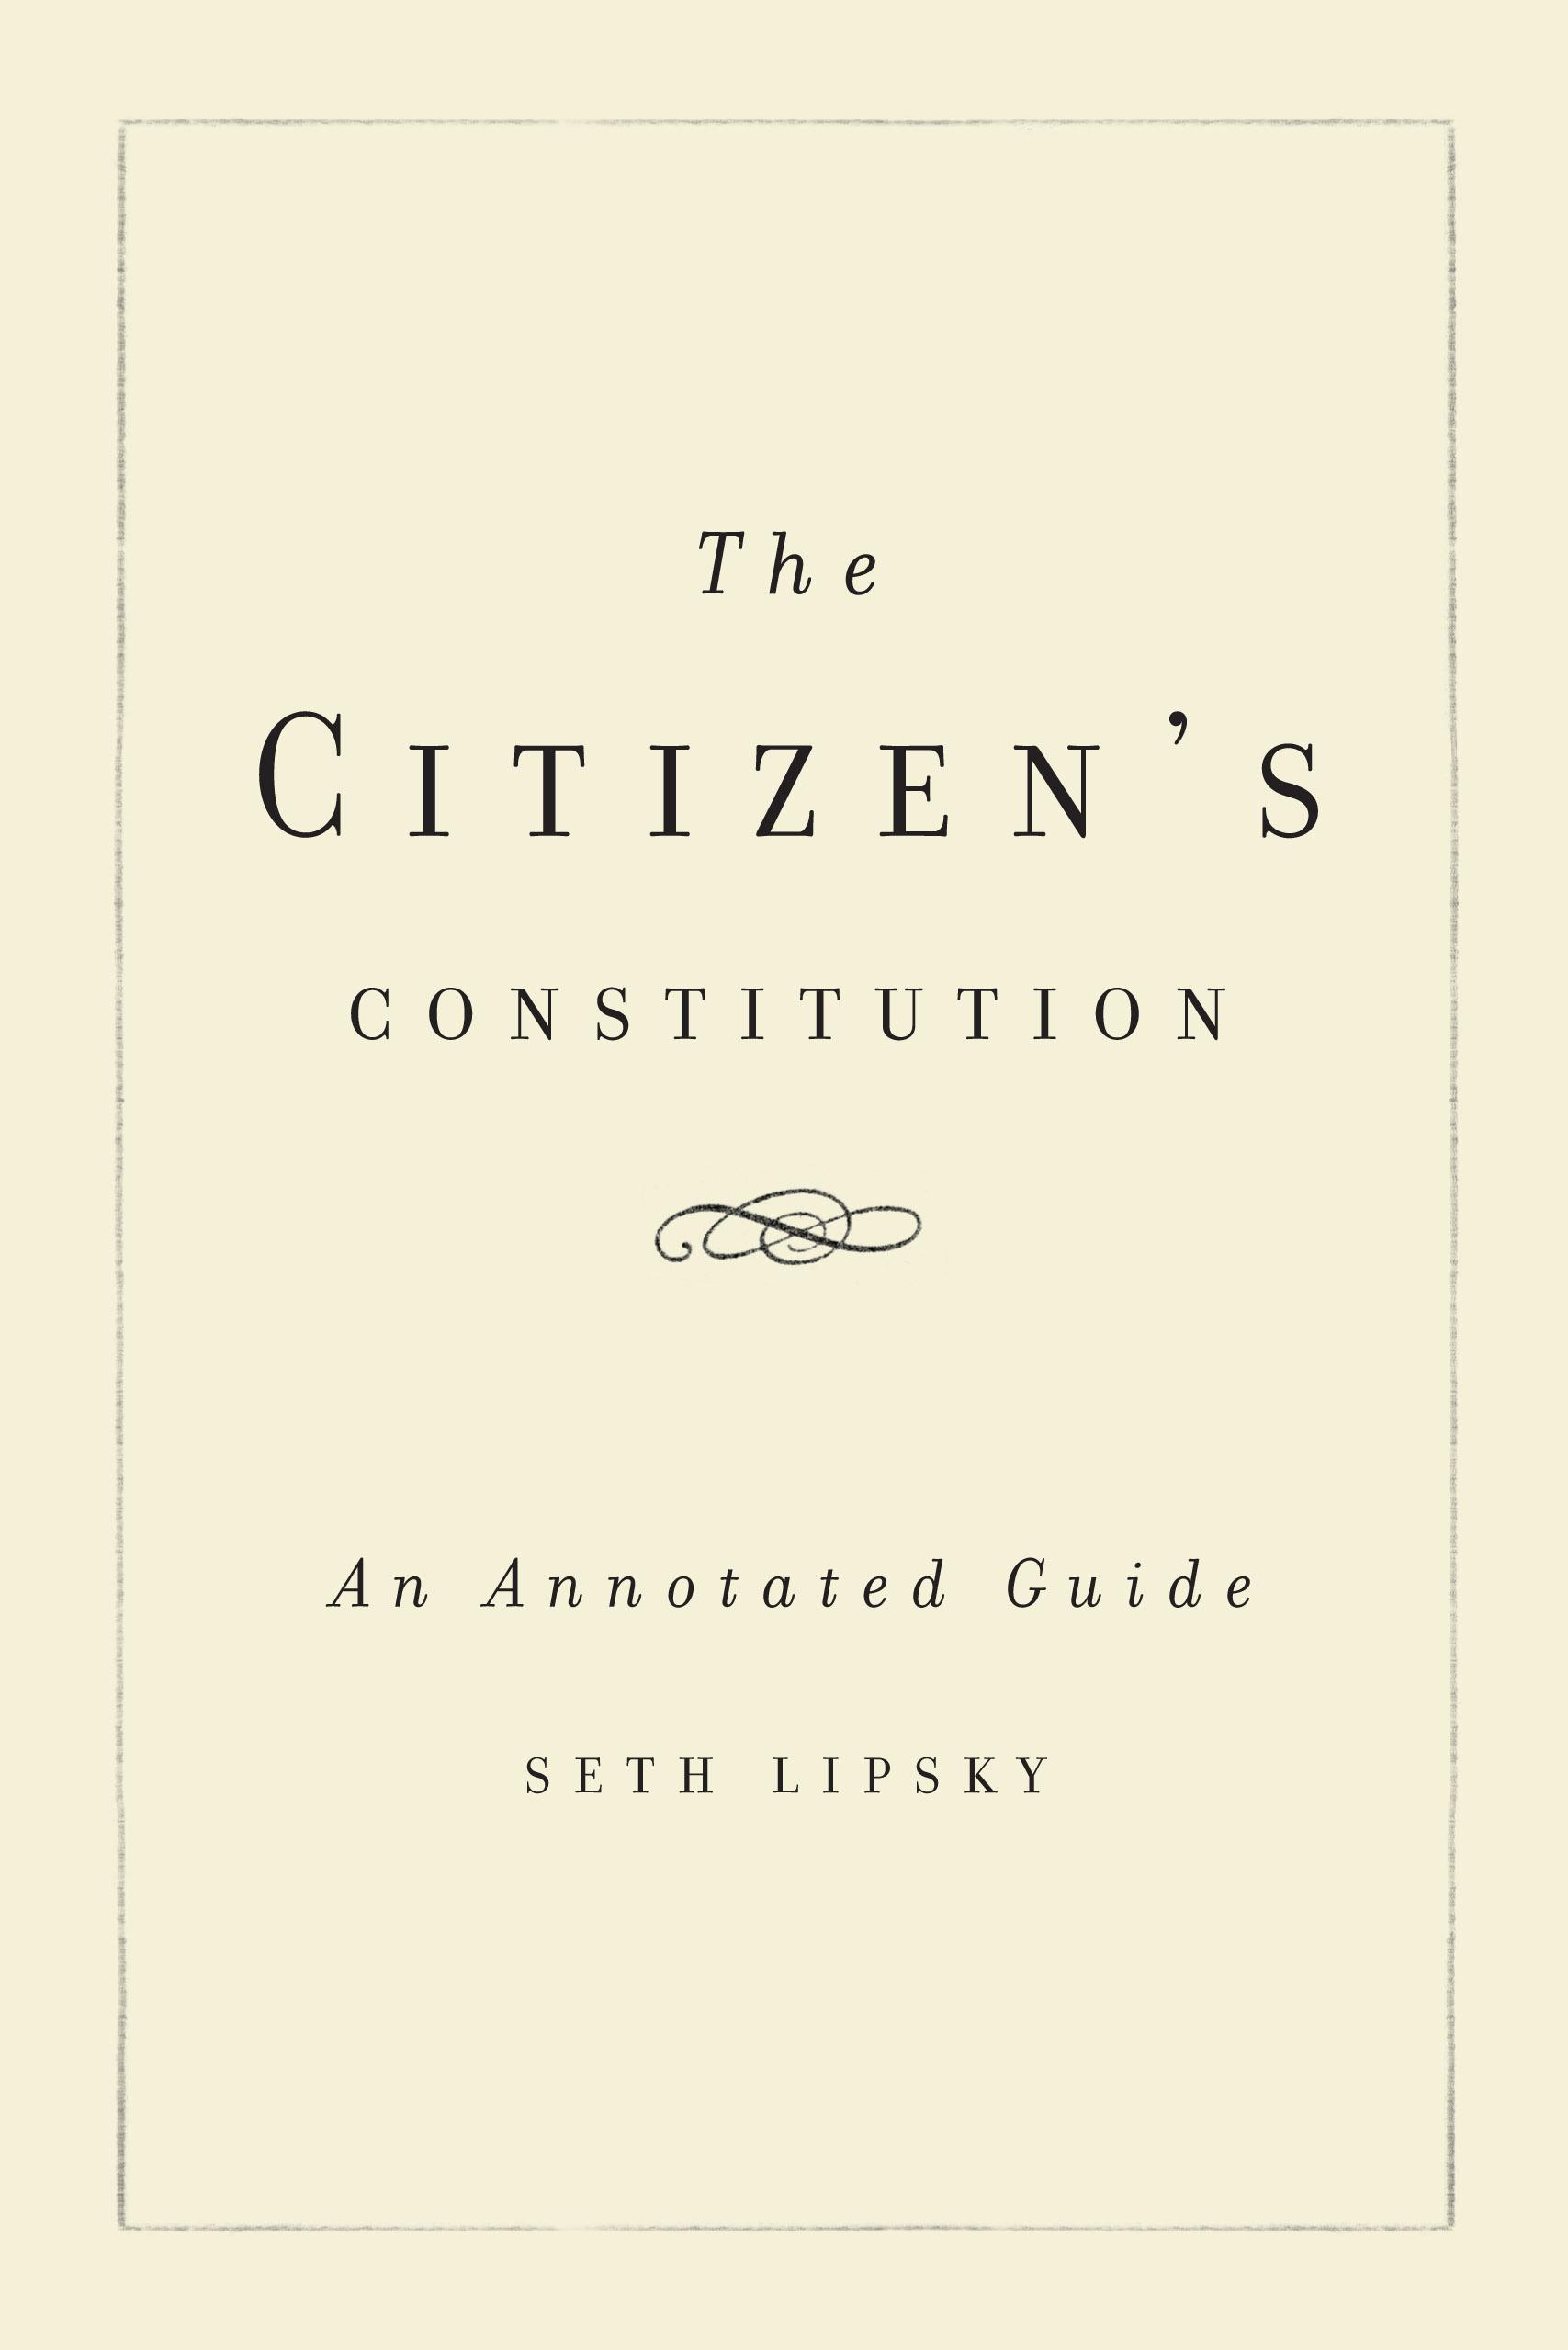 The Citizen's Constitution